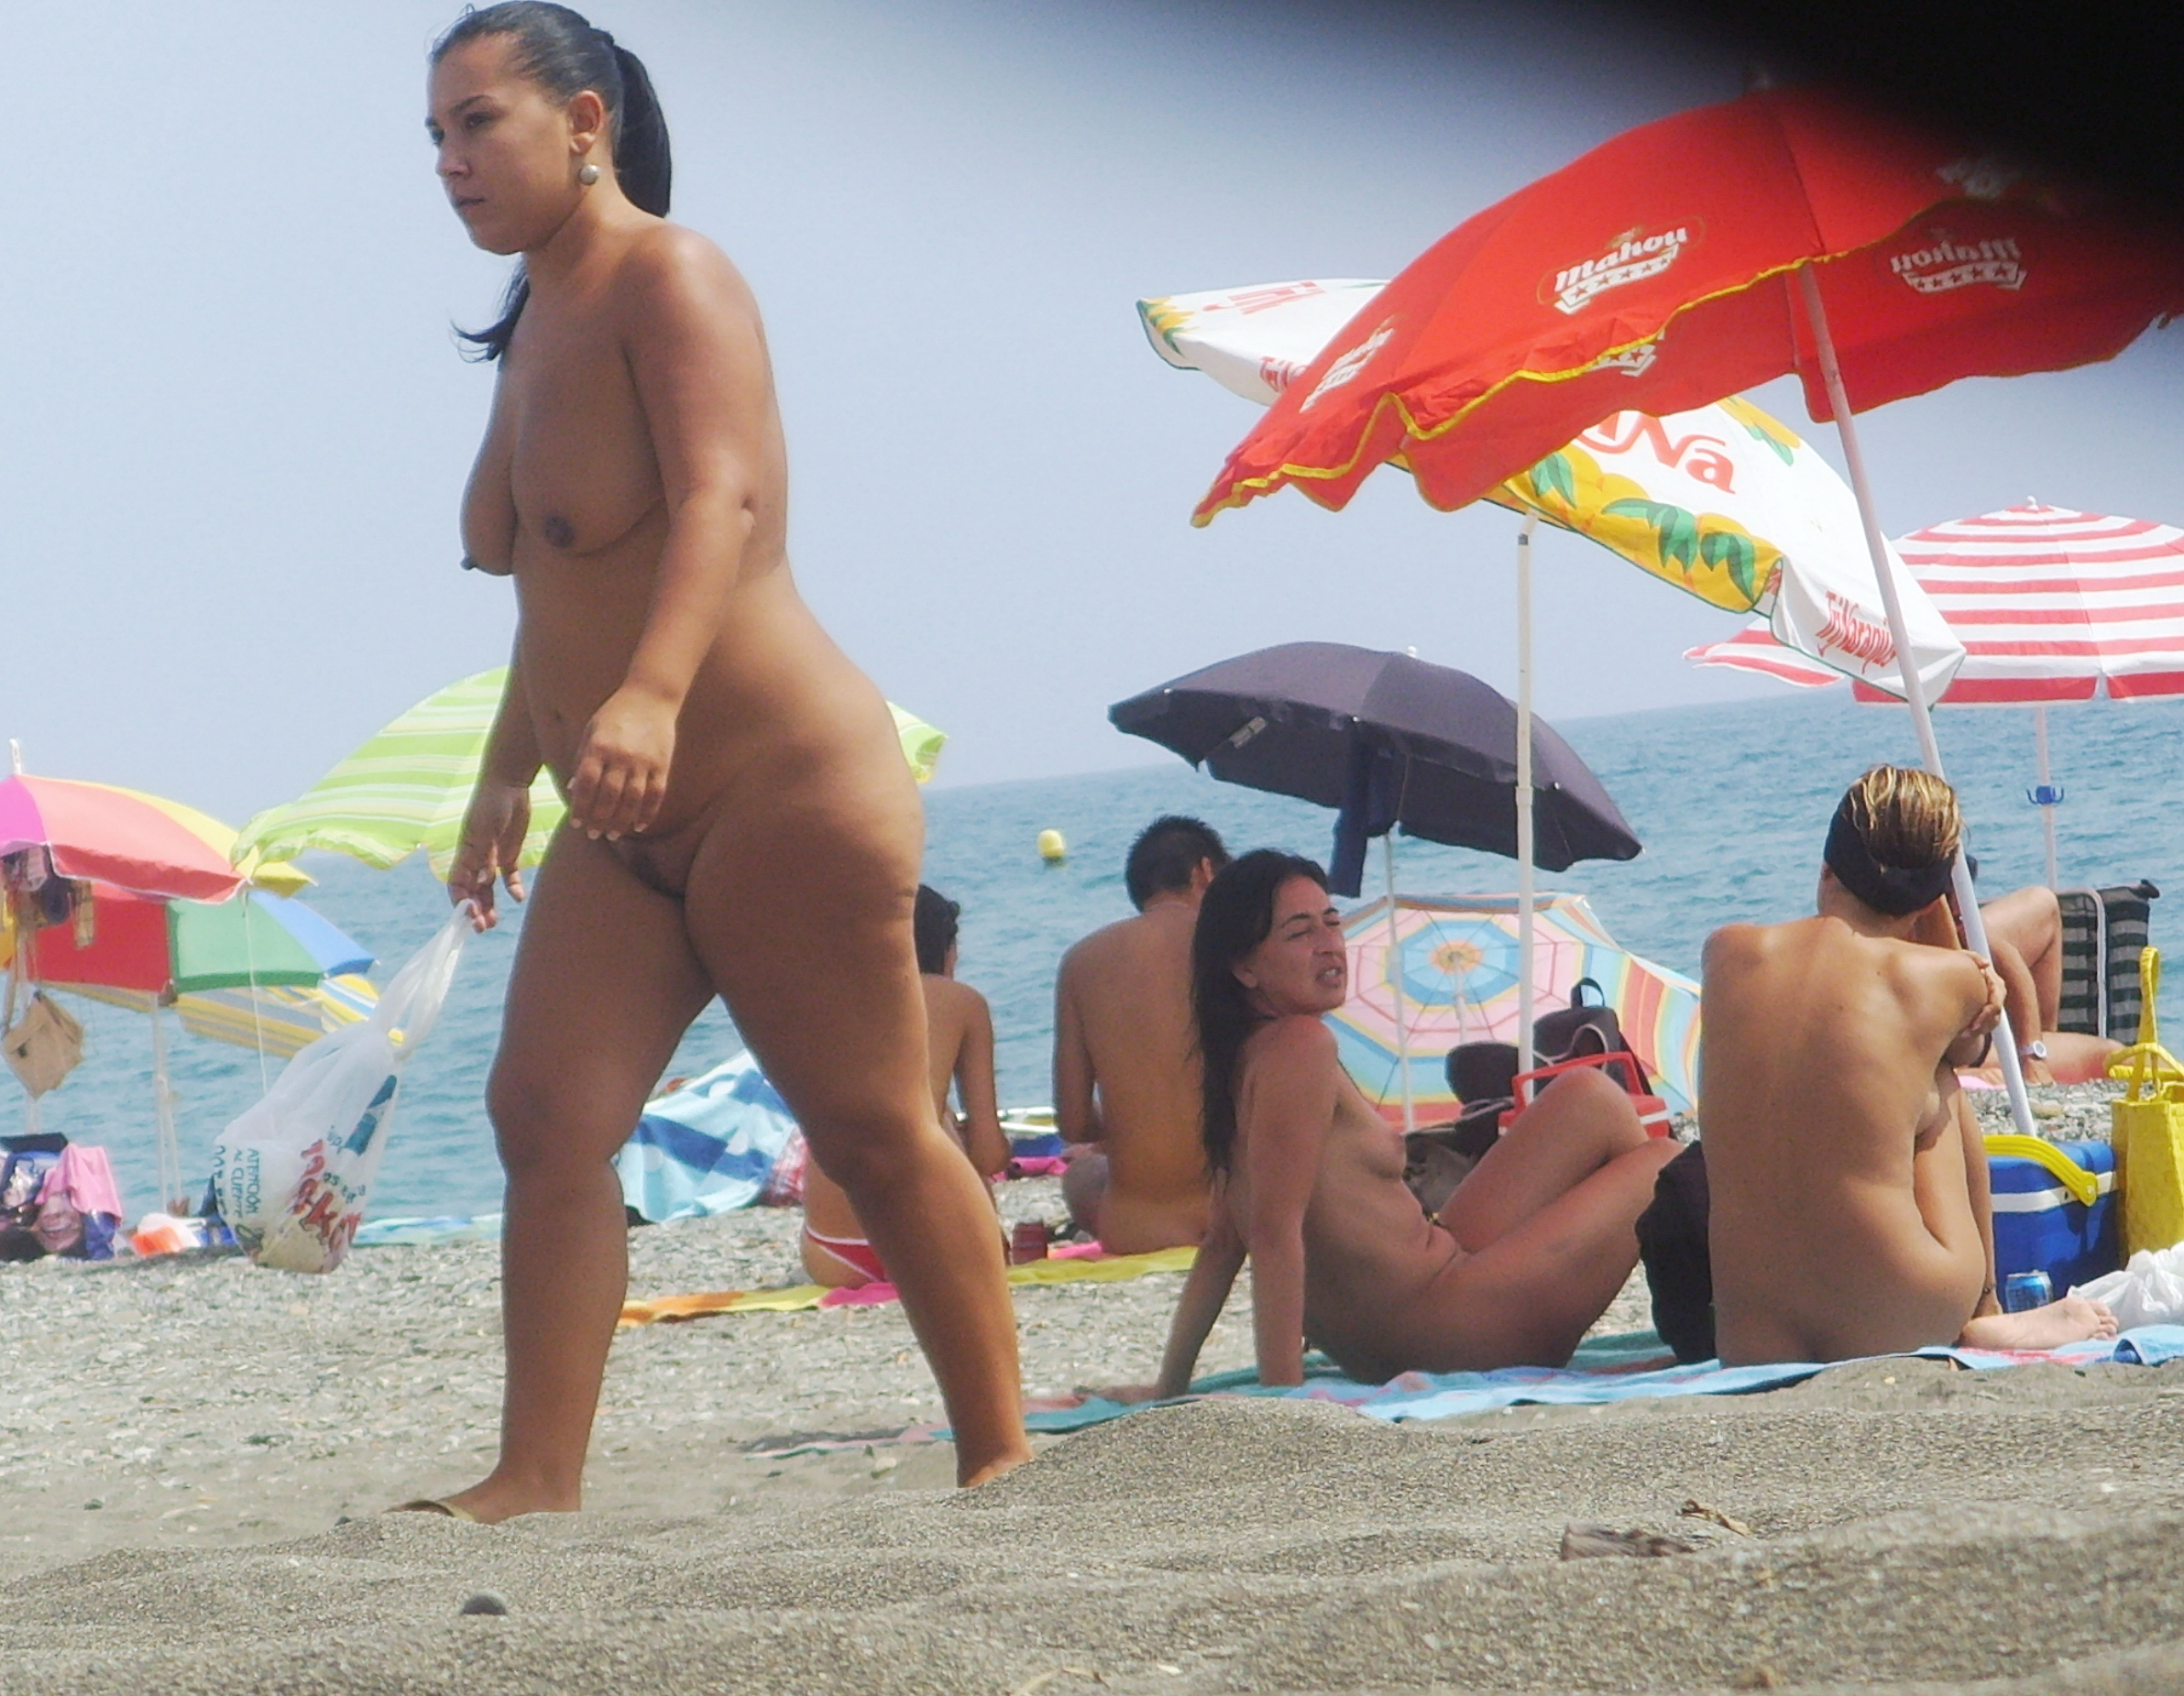 https://voyeurpapa.com/wp-content/uploads/2016/12/Nudists-family-nude-beach-2.jpg